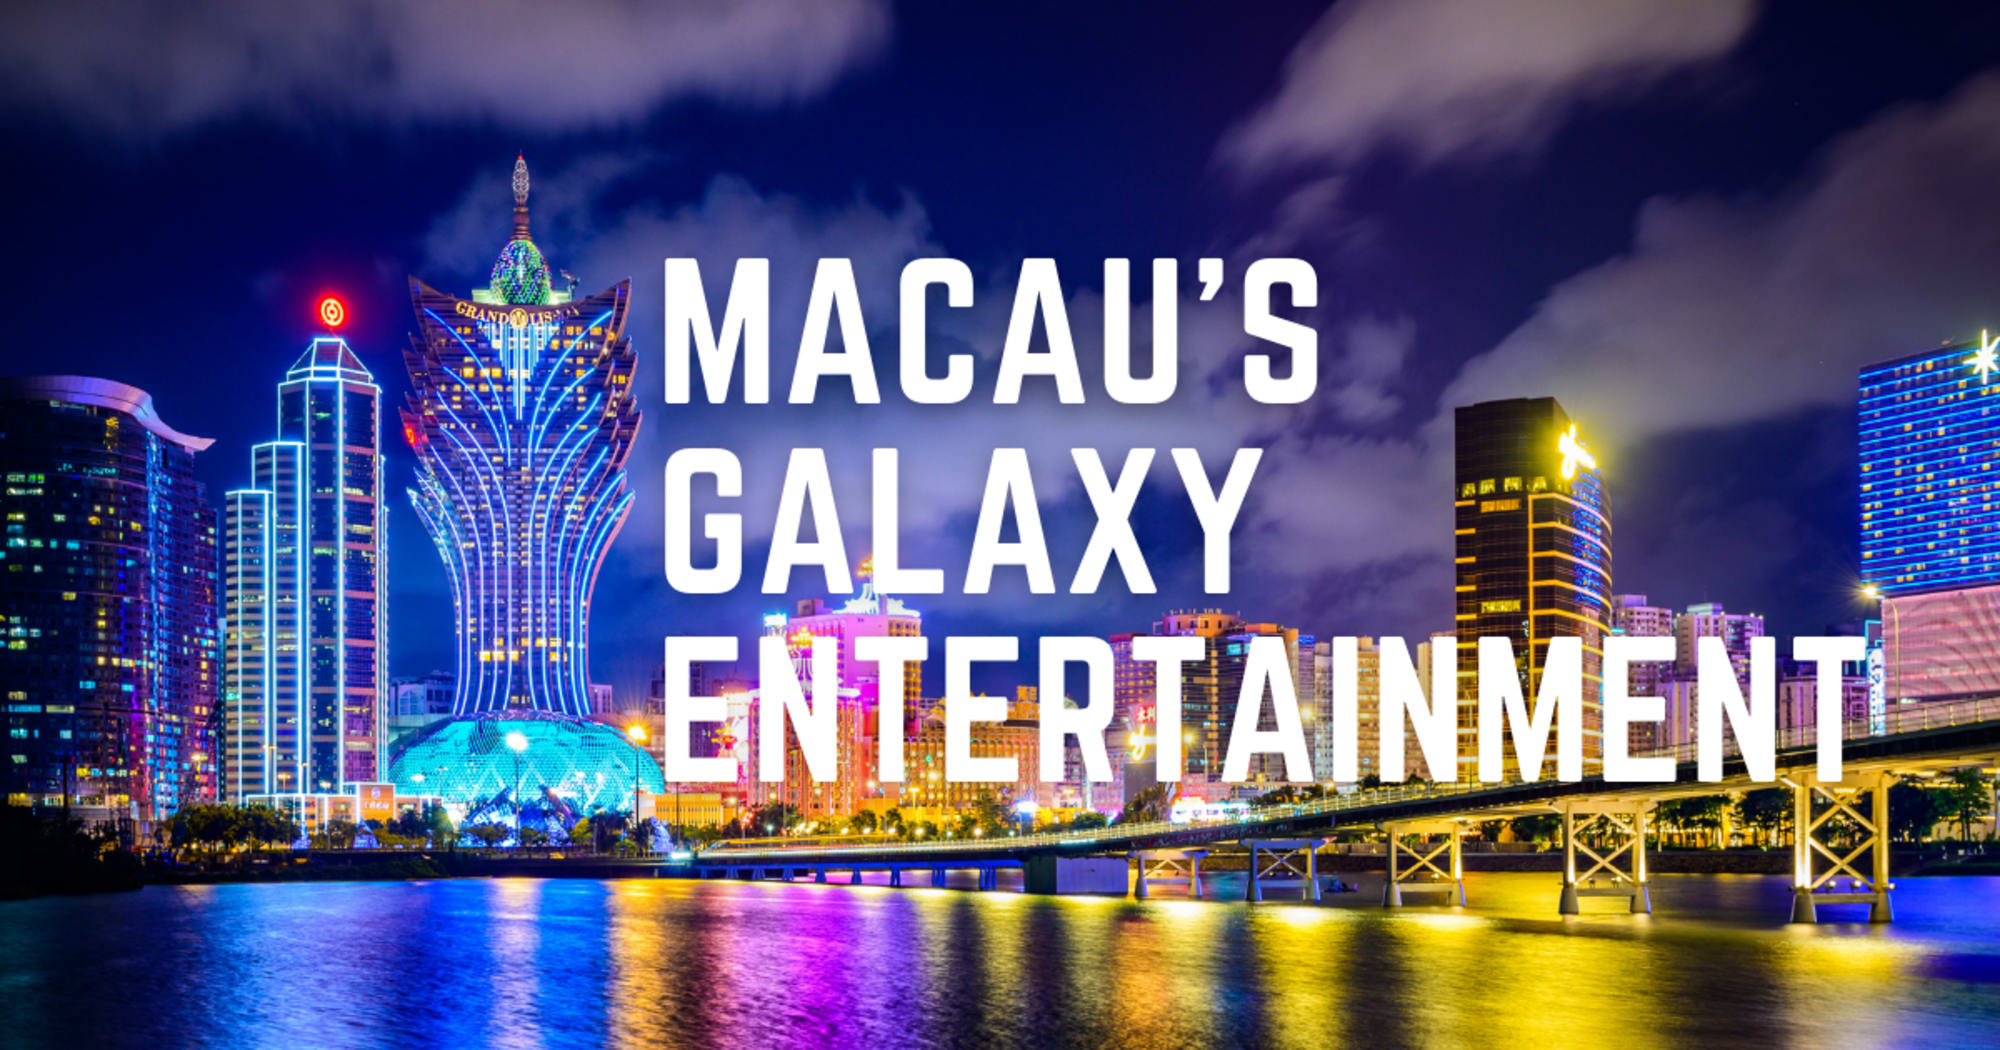 """LRWC is """"reviving"""" its partnership with Macau's Galaxy Entertainment over the construction of casino in Boracay"""